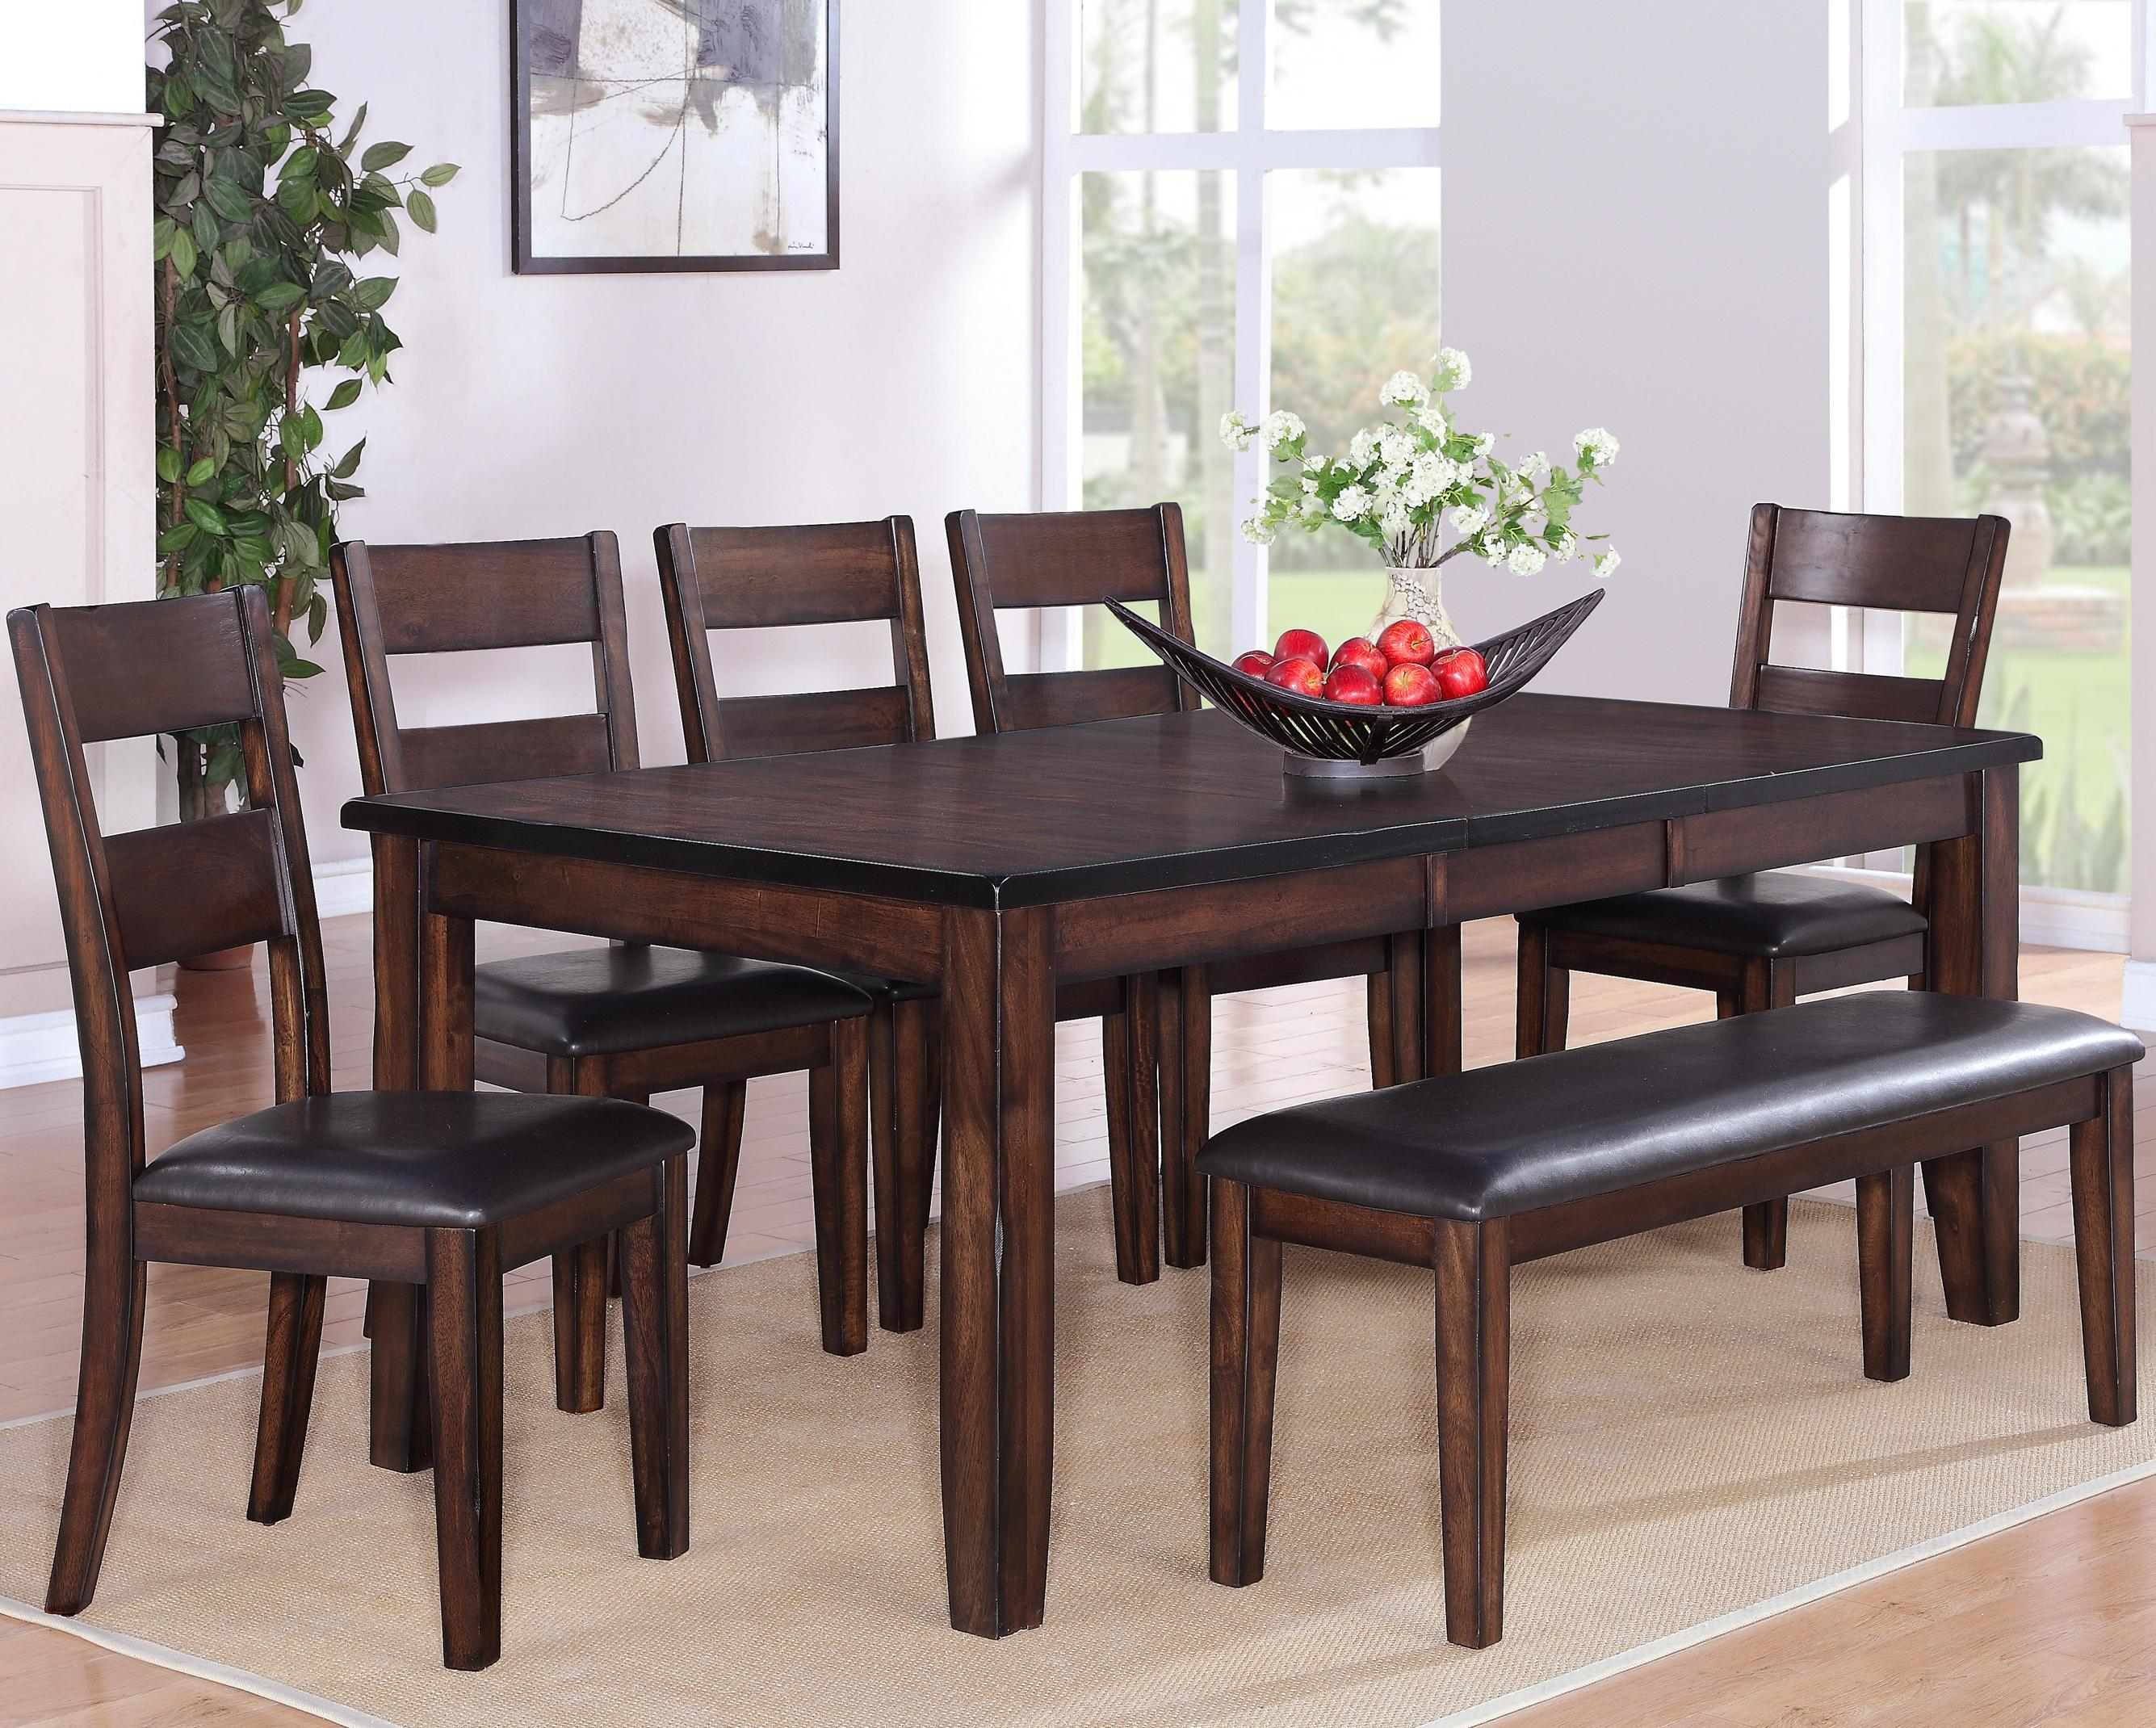 Crown Mark Maldives 2360t 4278 Rectangular Dining Table